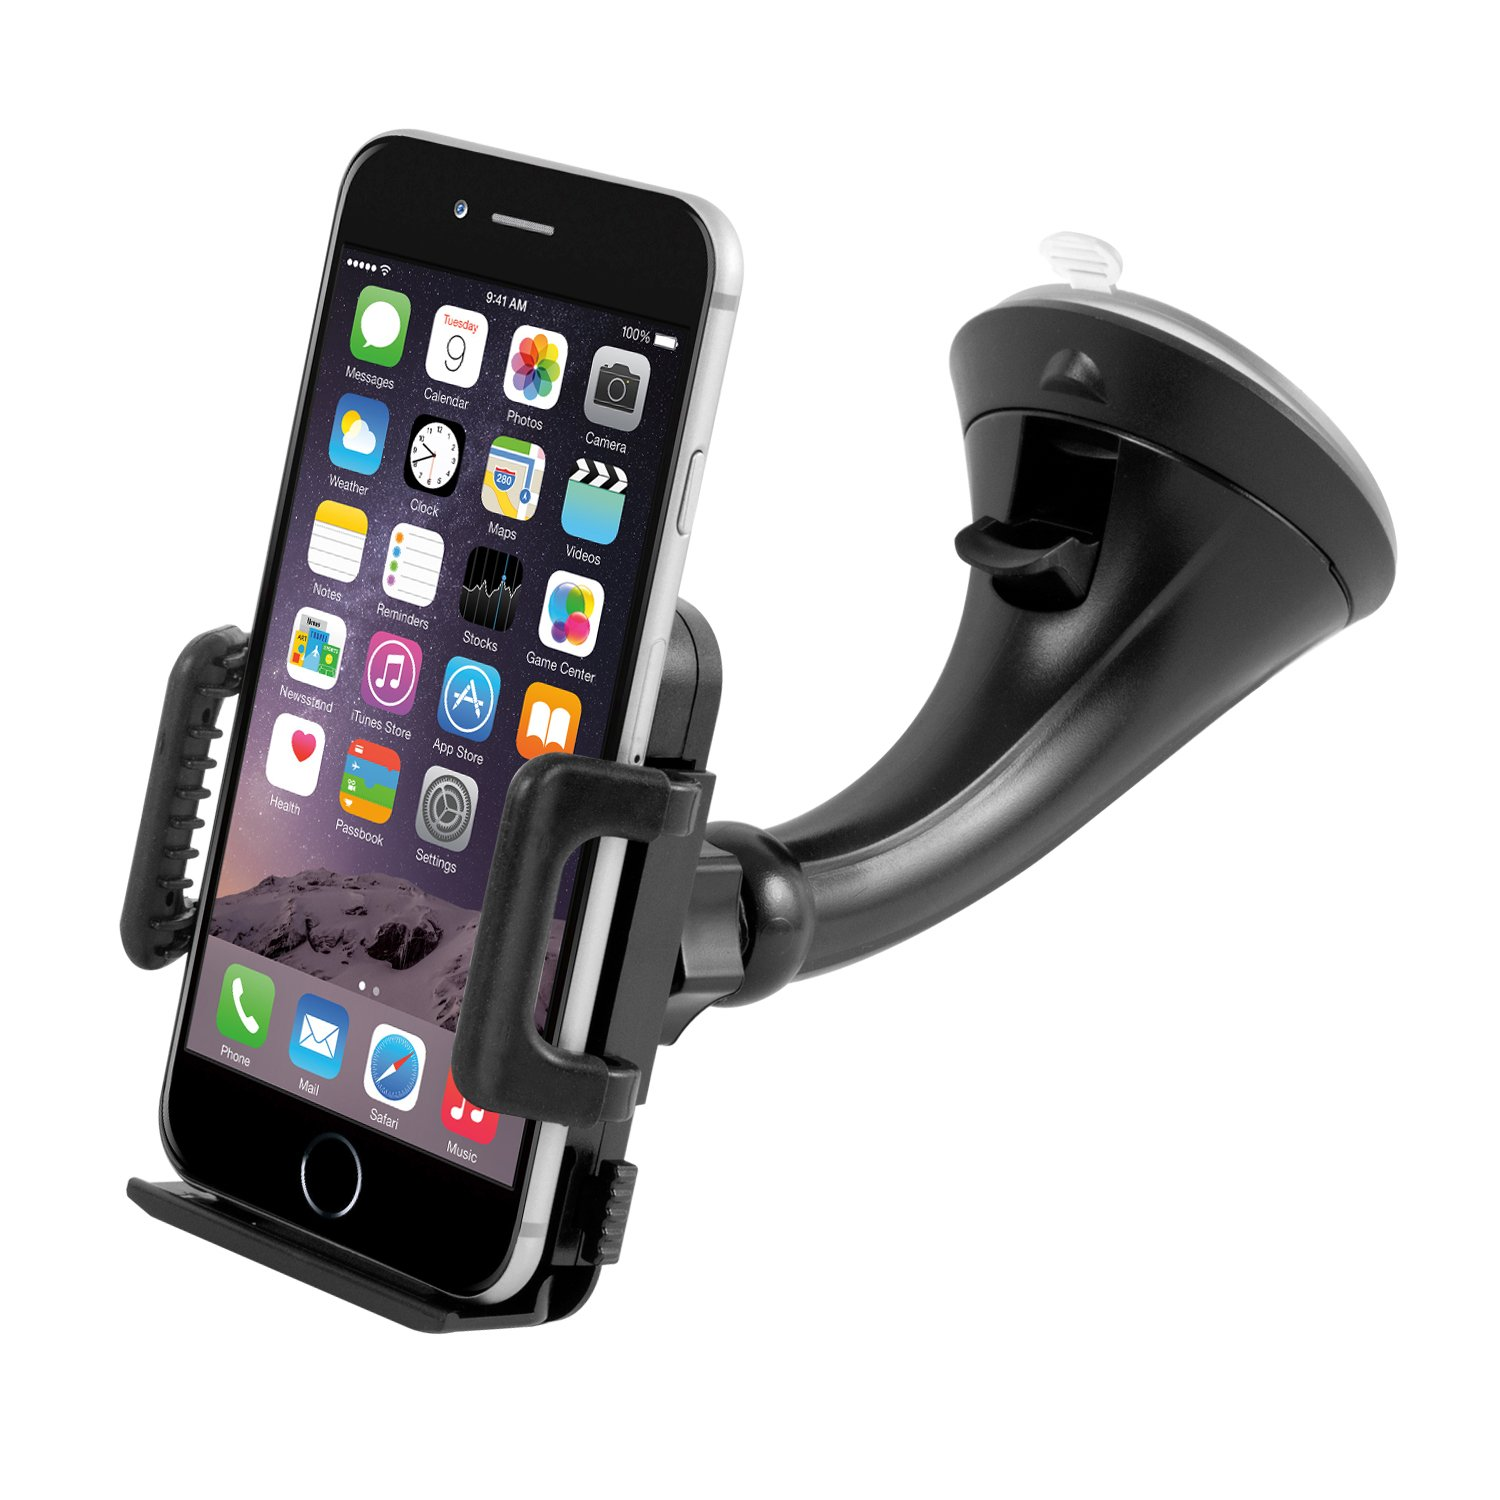 Car Mount Holder, Getron Windshield Dashboard Universal Car Cell Phone Cradle for iPhone X 8 Plus 8 7 Plus 6S 6 SE 5S Samsung Galaxy S8 Plus S7 Edge Note 8 Google Pixel 2 XL LG G6 and All Smartphones by Getron (Image #1)